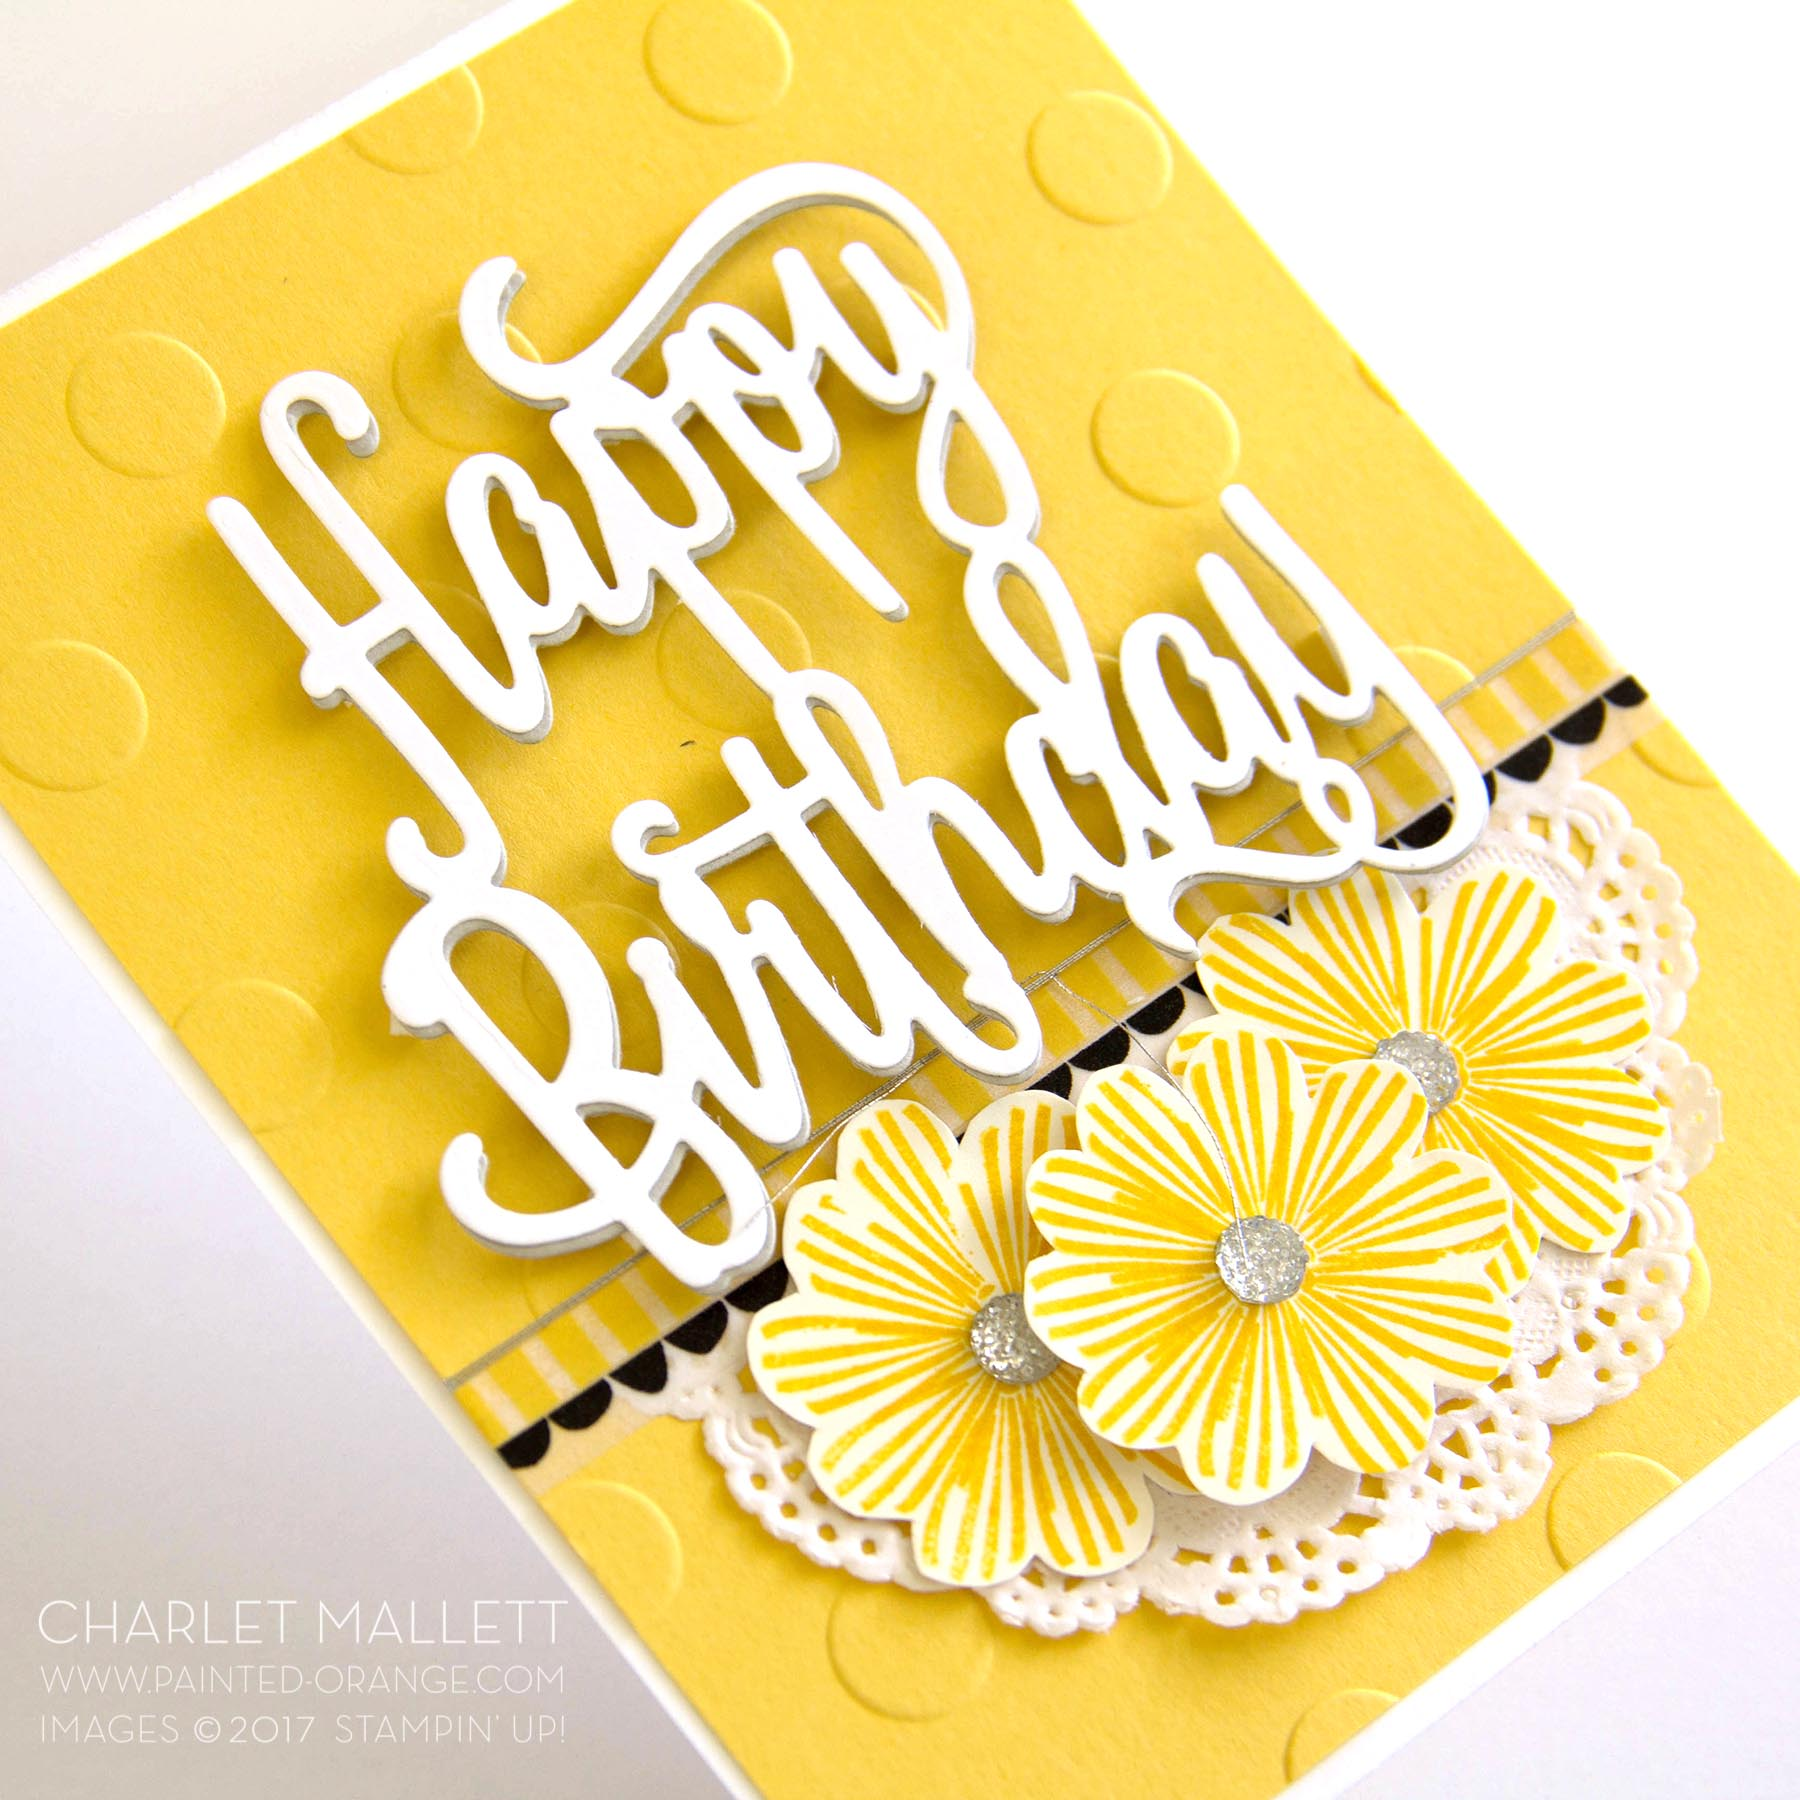 Happy Birthday Gorgeous - Charlet Mallett, balloon streamers turned into flowers!